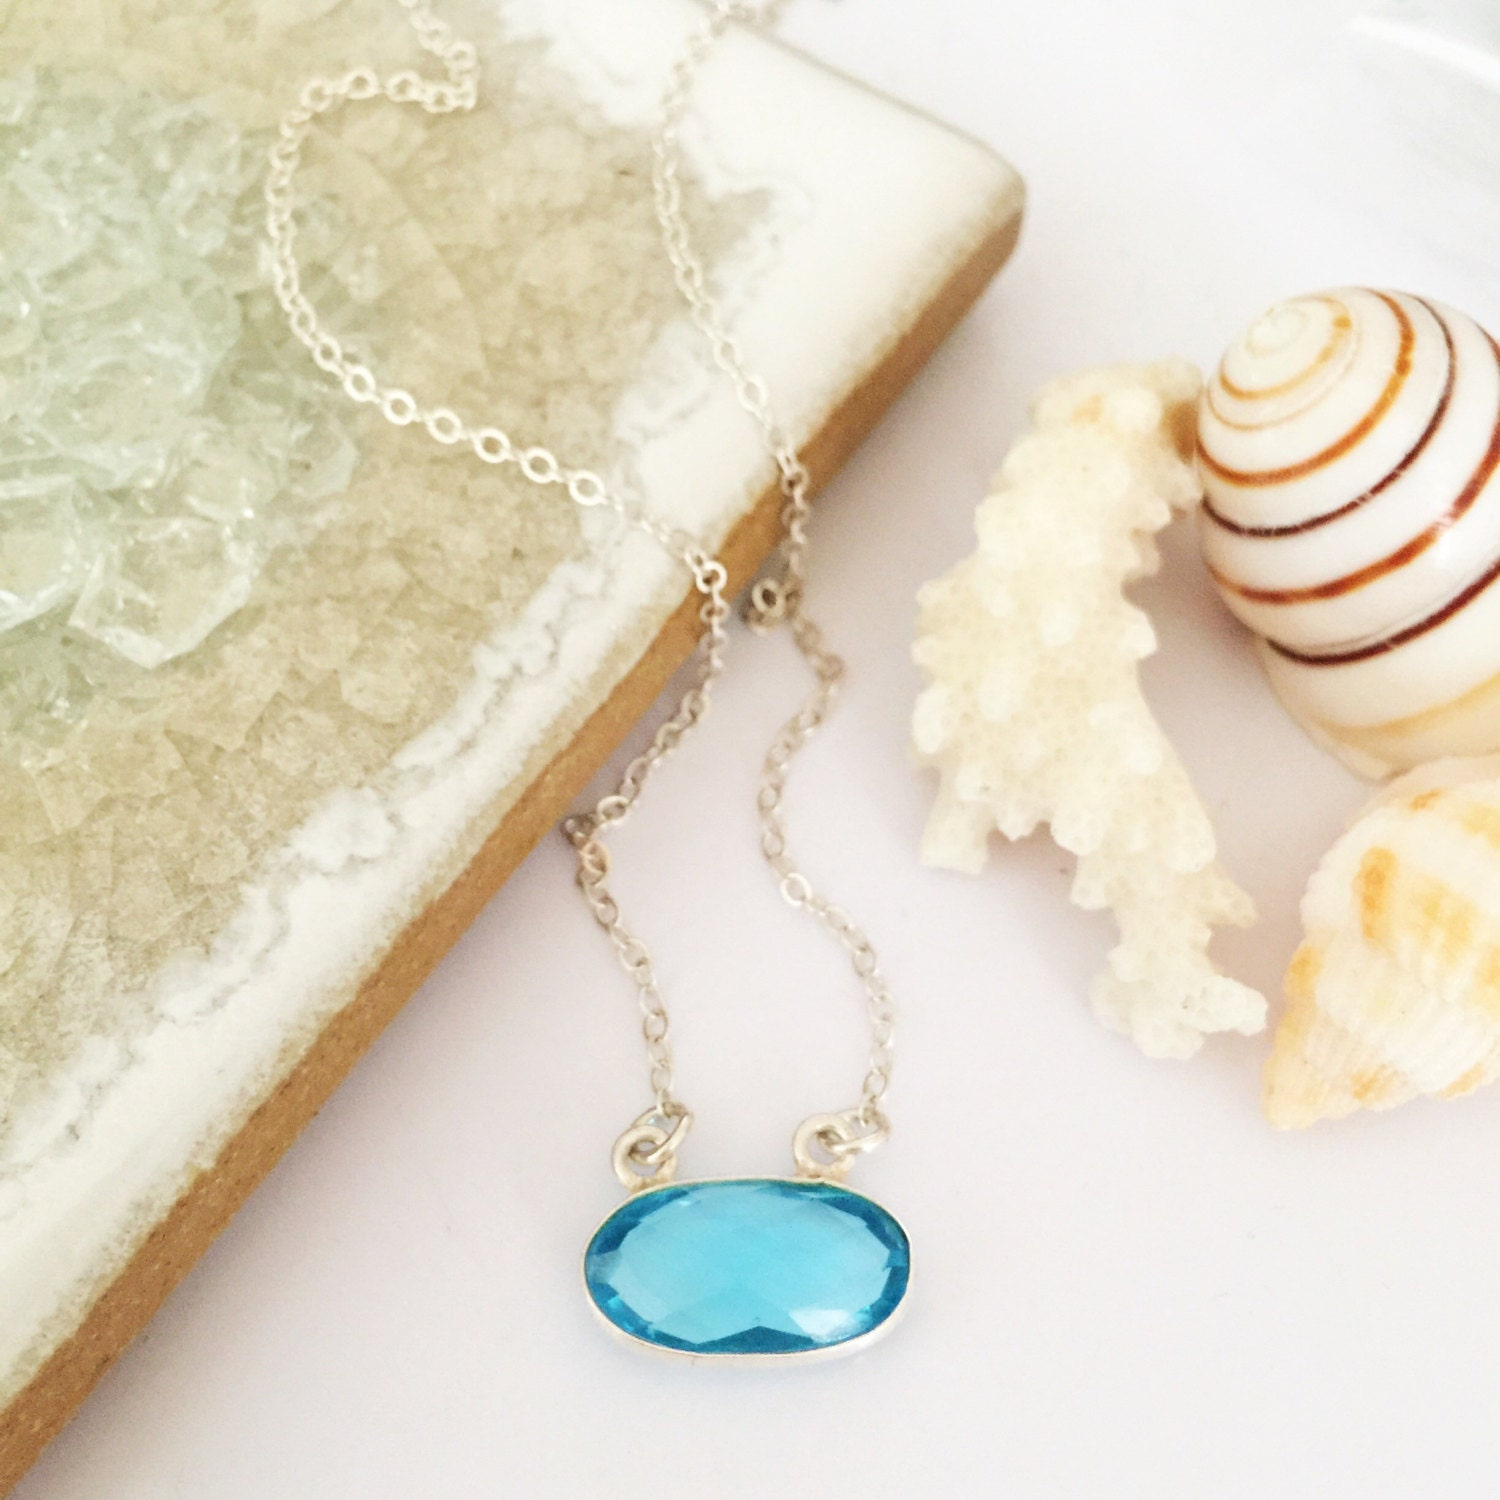 Blue topaz pendant sterling silver boho layering necklace for All washed up jewelry